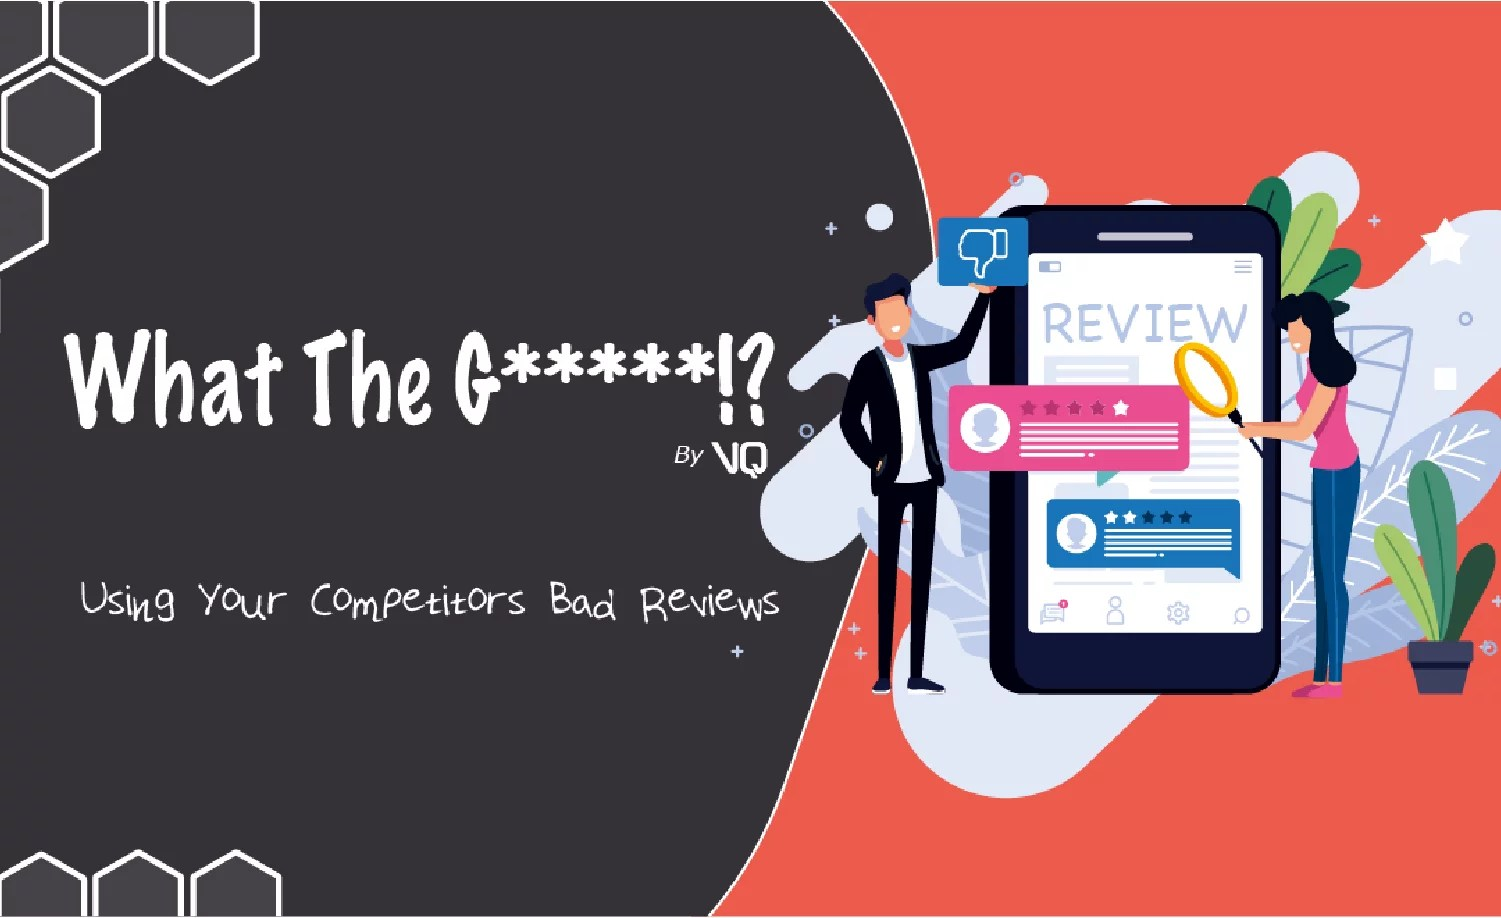 EP 4: What The Growth!? – Using Your Competitor's Bad Reviews